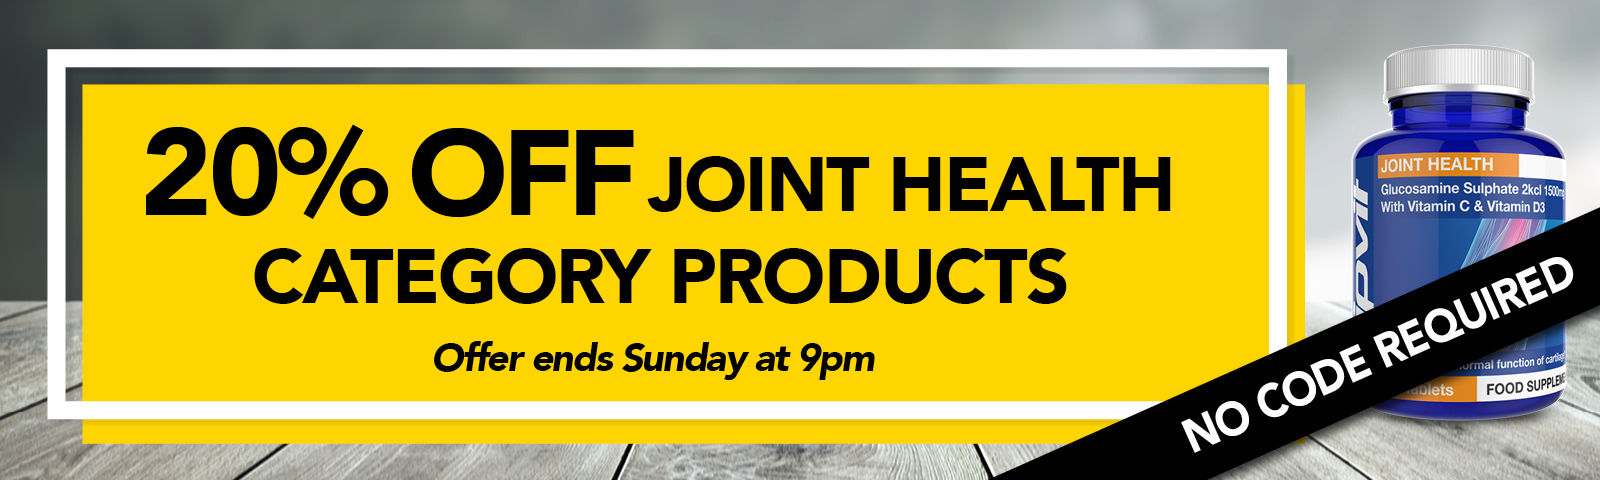 20% Off Joint Health